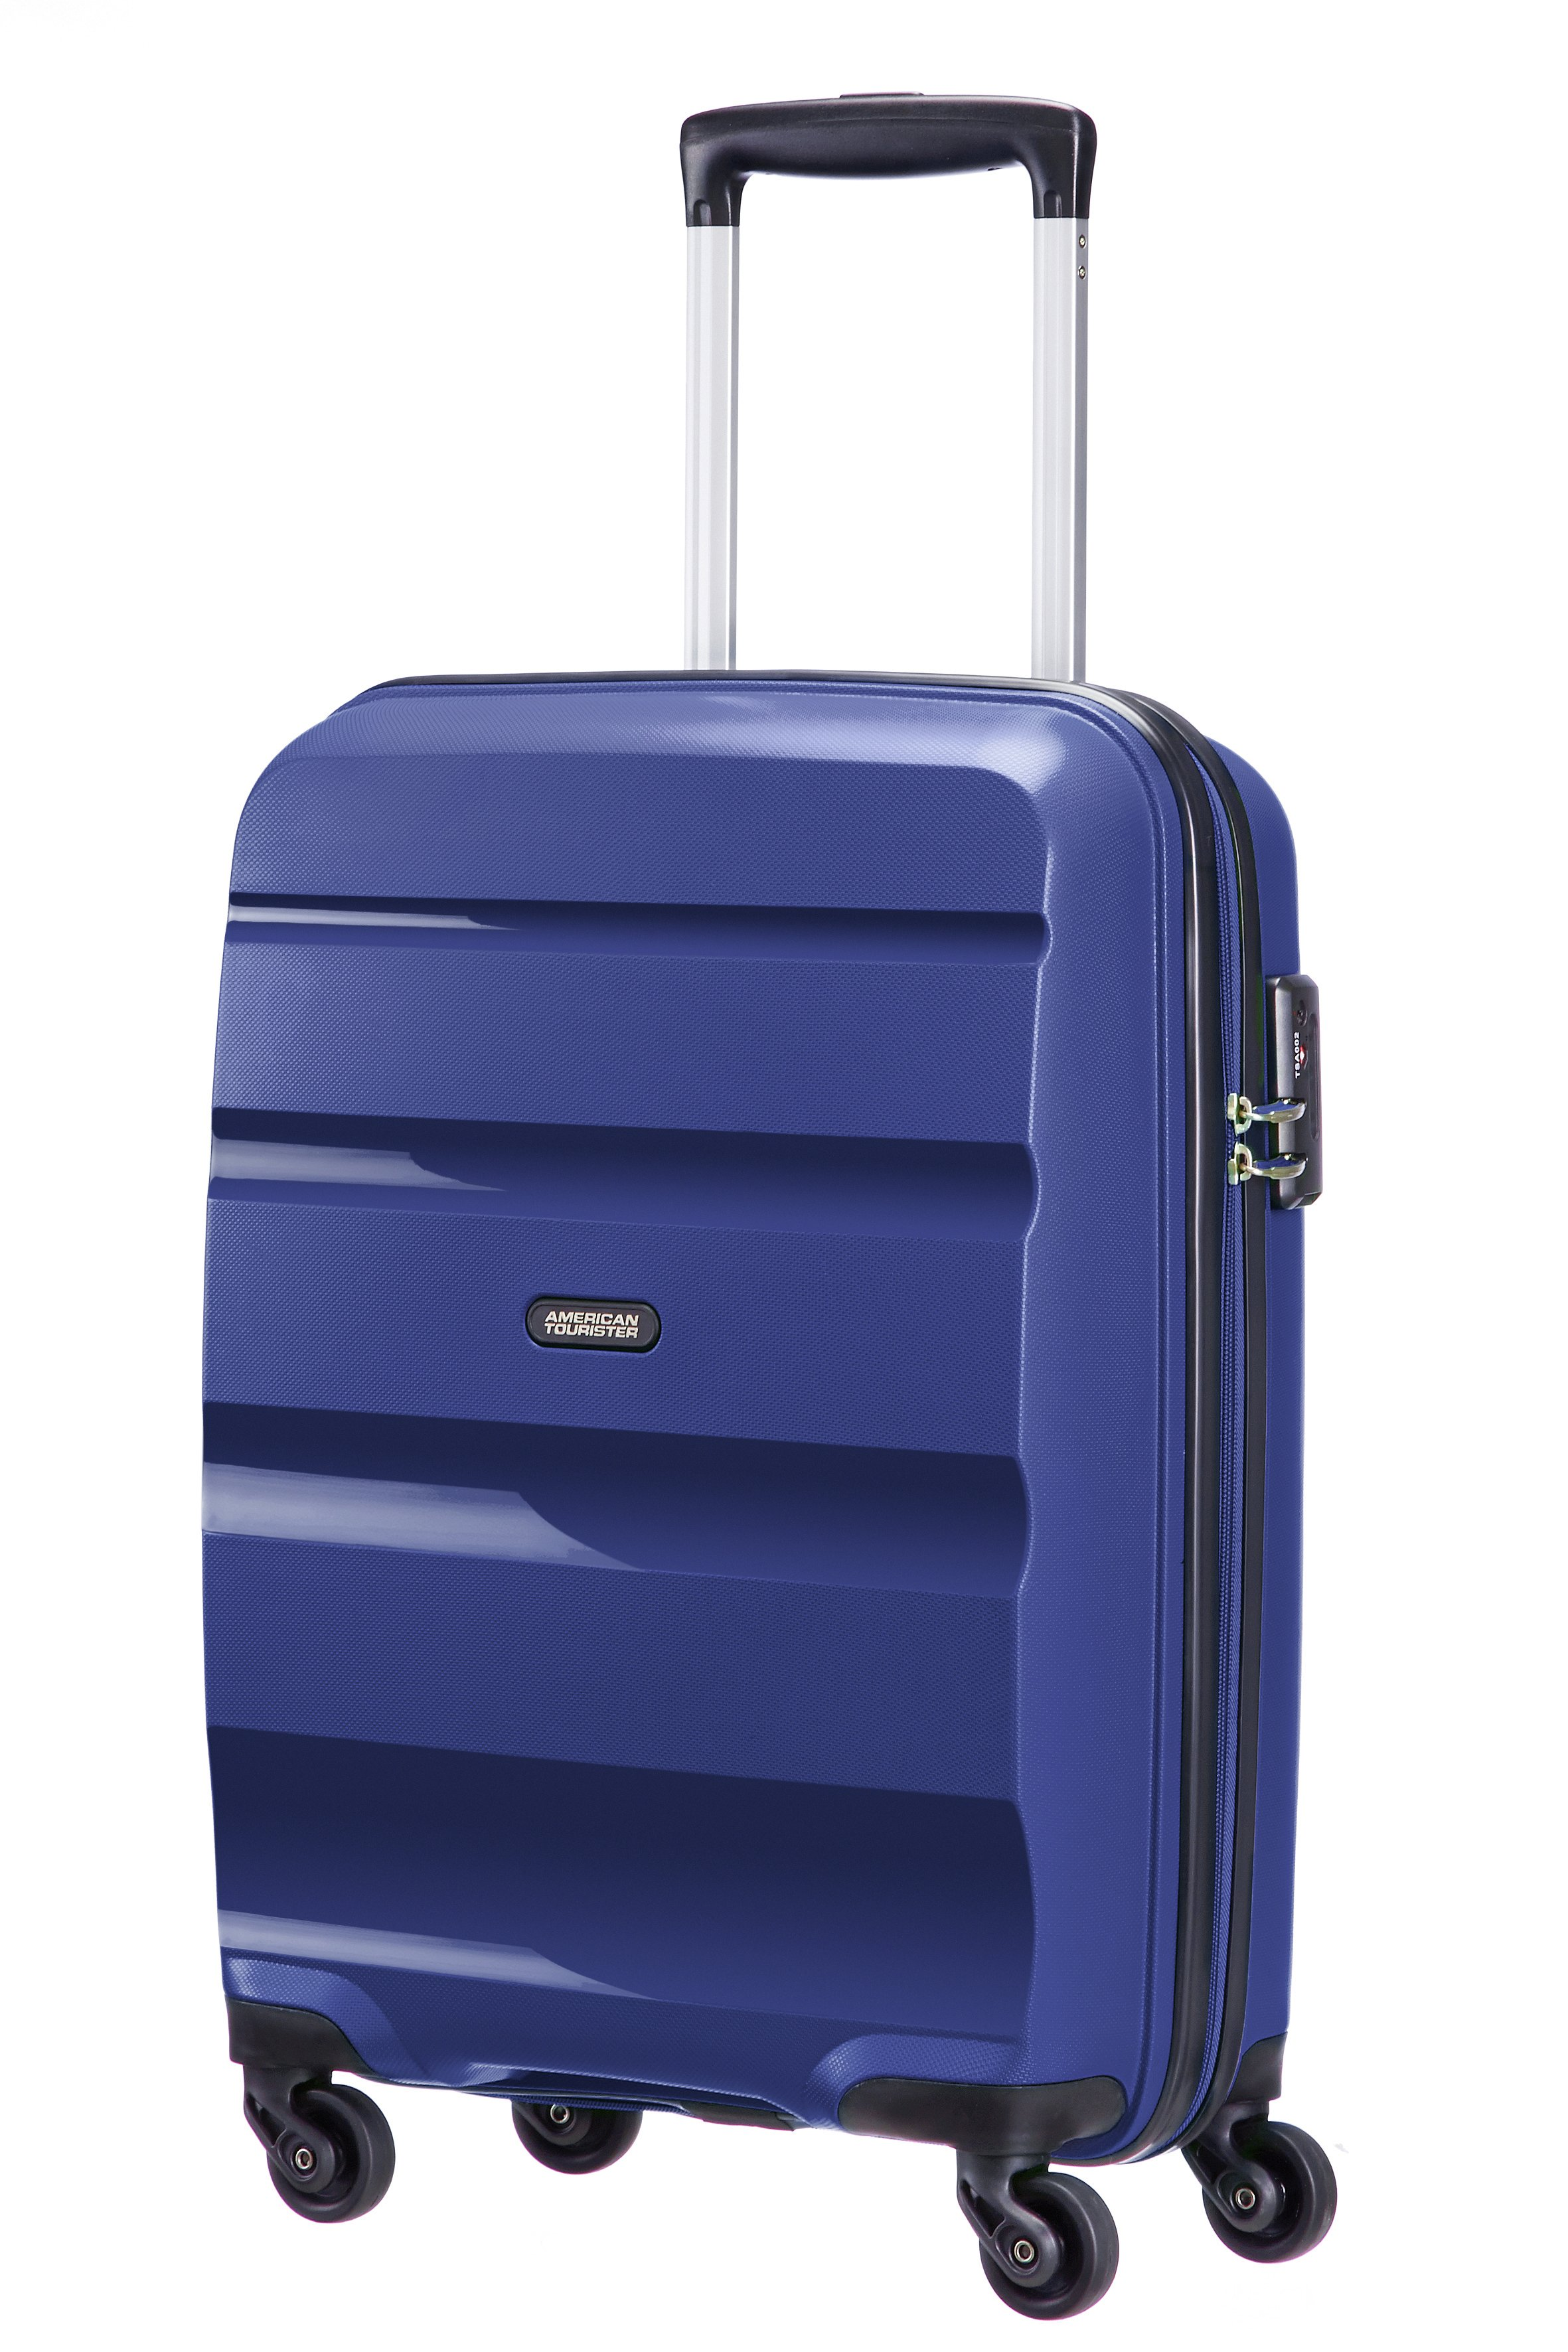 American Tourister review